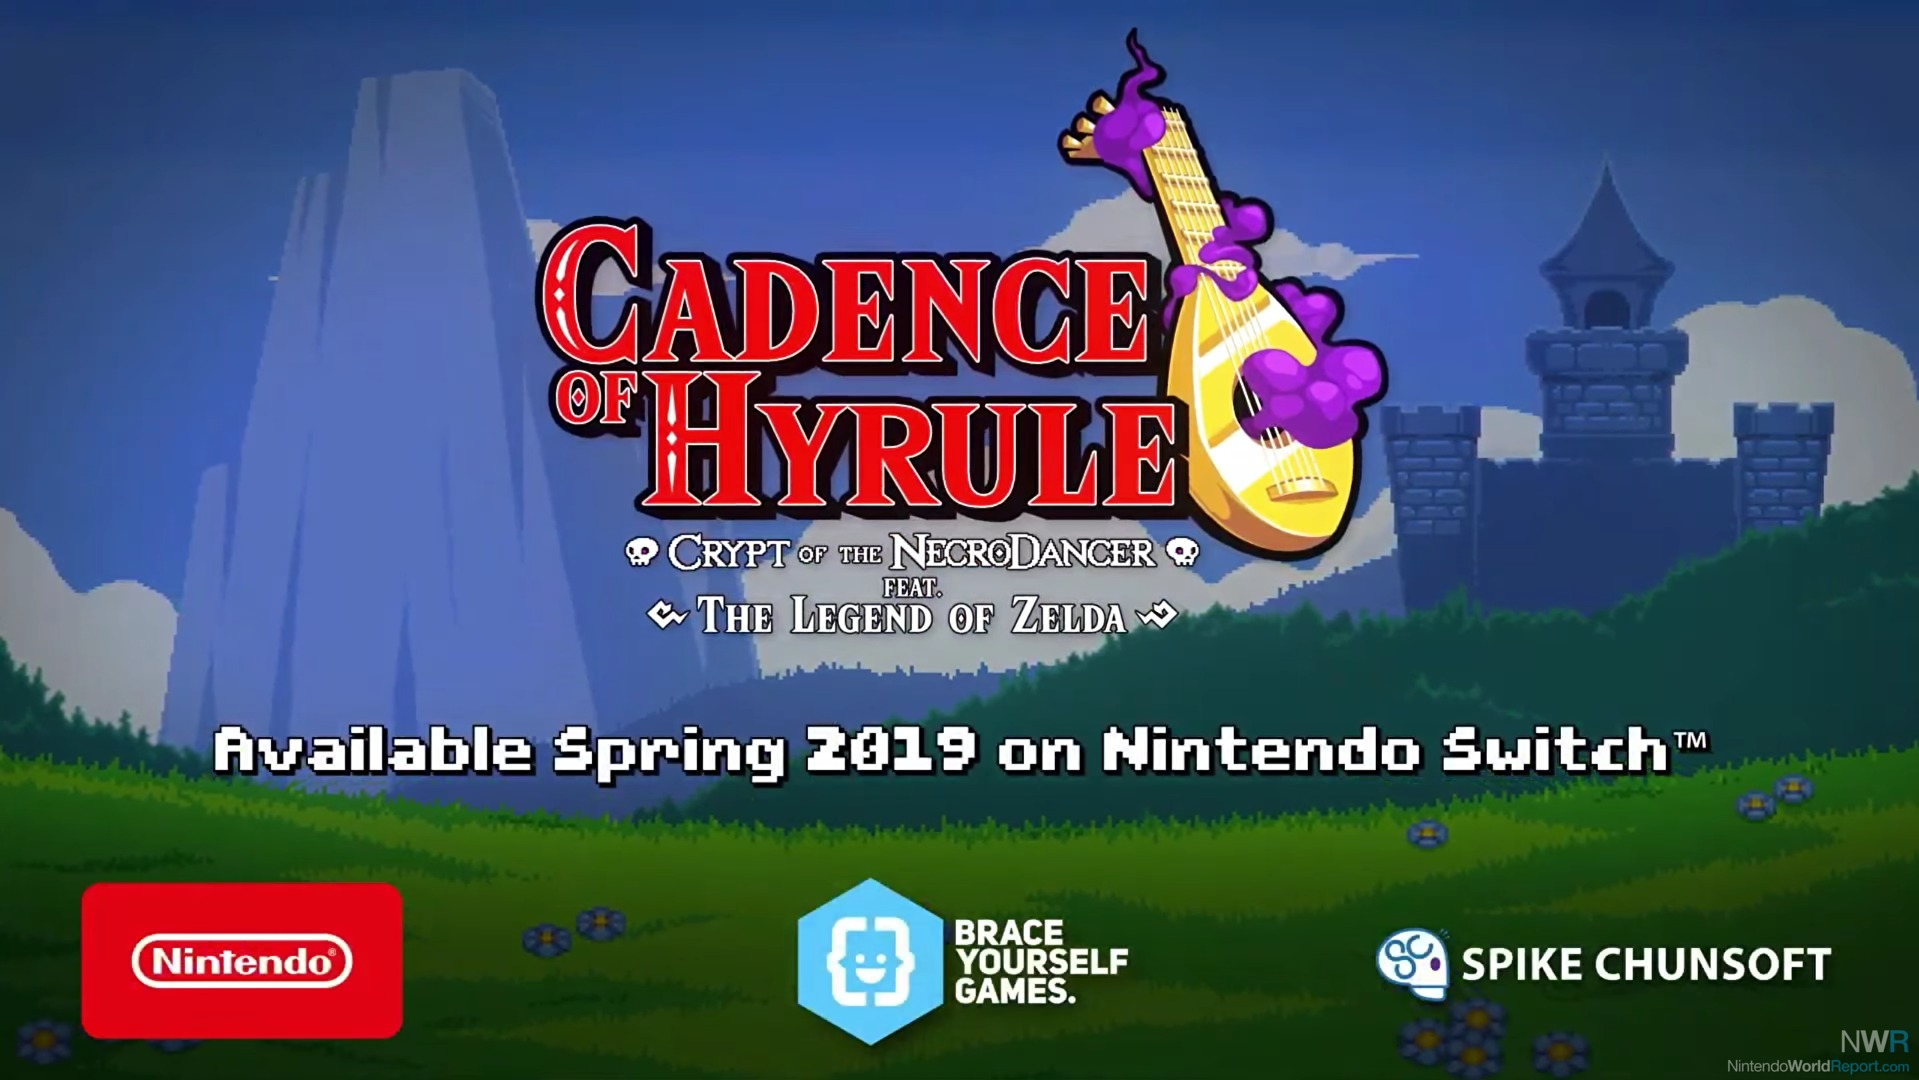 'Cadence of Hyrule' Announced For Nintendo Switch